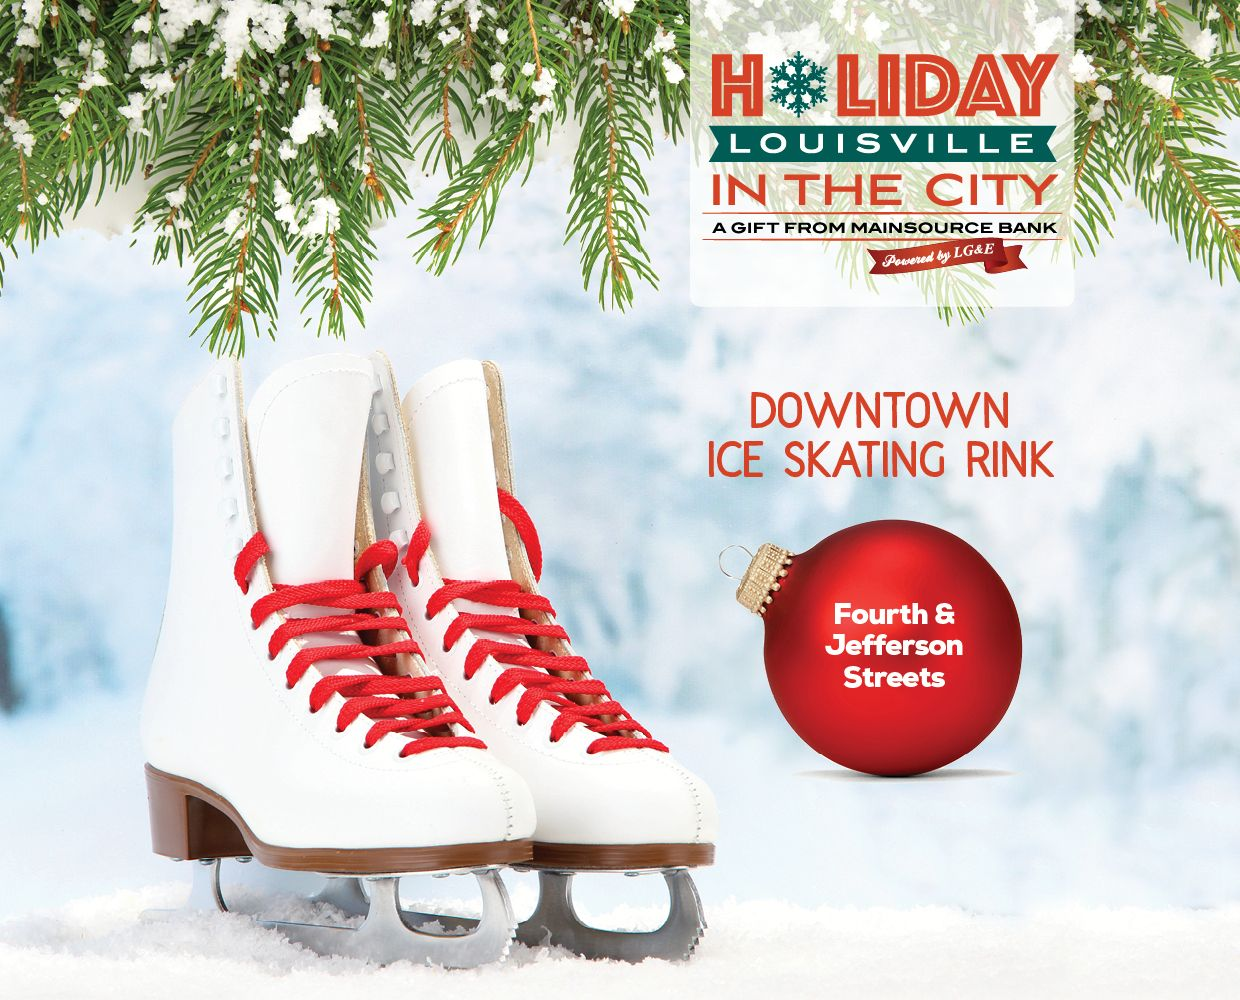 Through Jan 1 - Holiday in the City Ice Skating Rink image